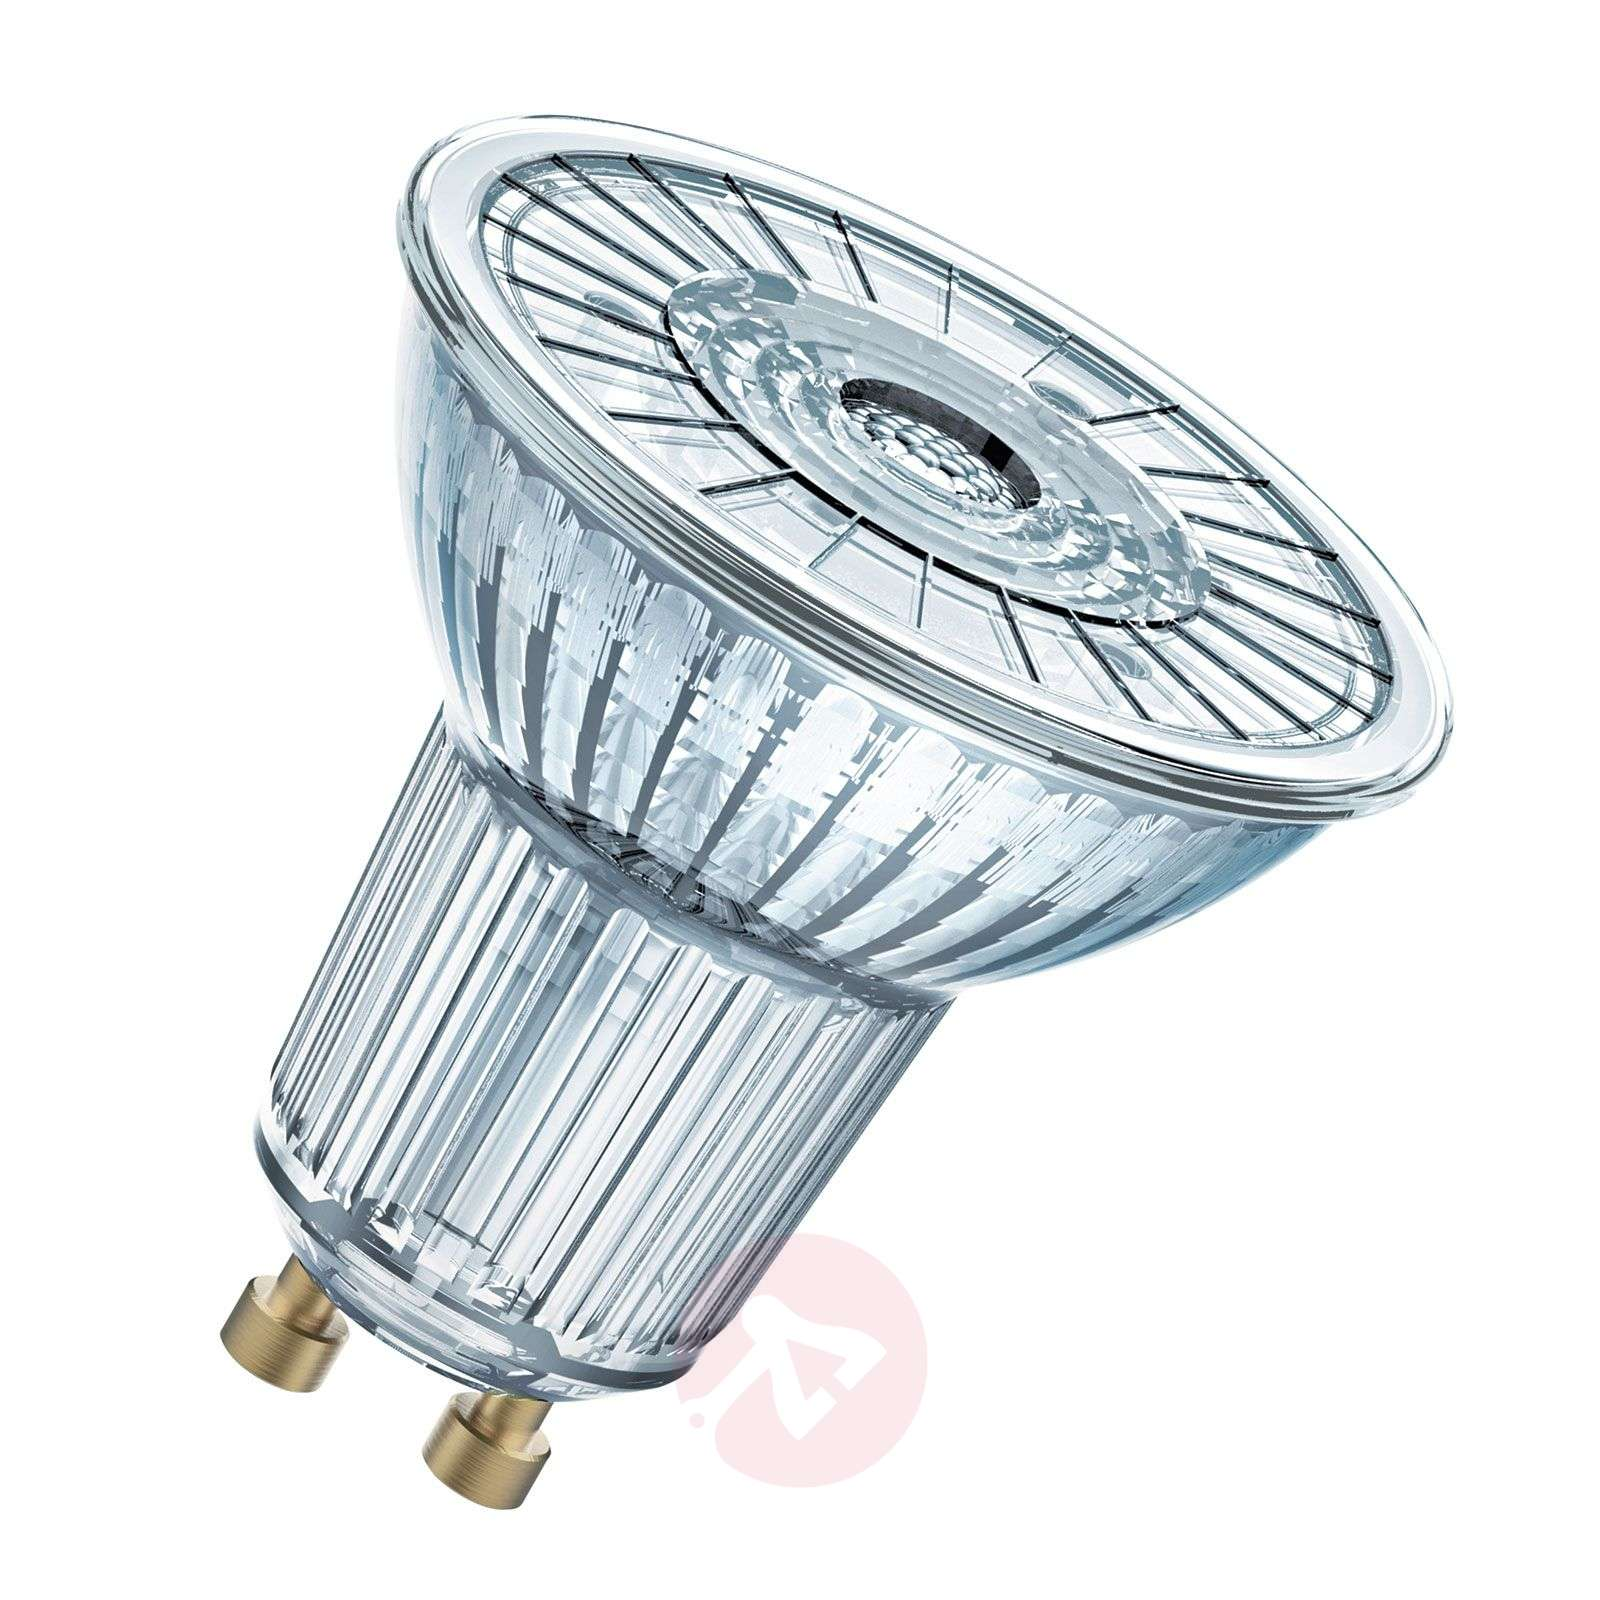 GU10 4,3W 827 Led-reflector 2-delige set-7260972-03